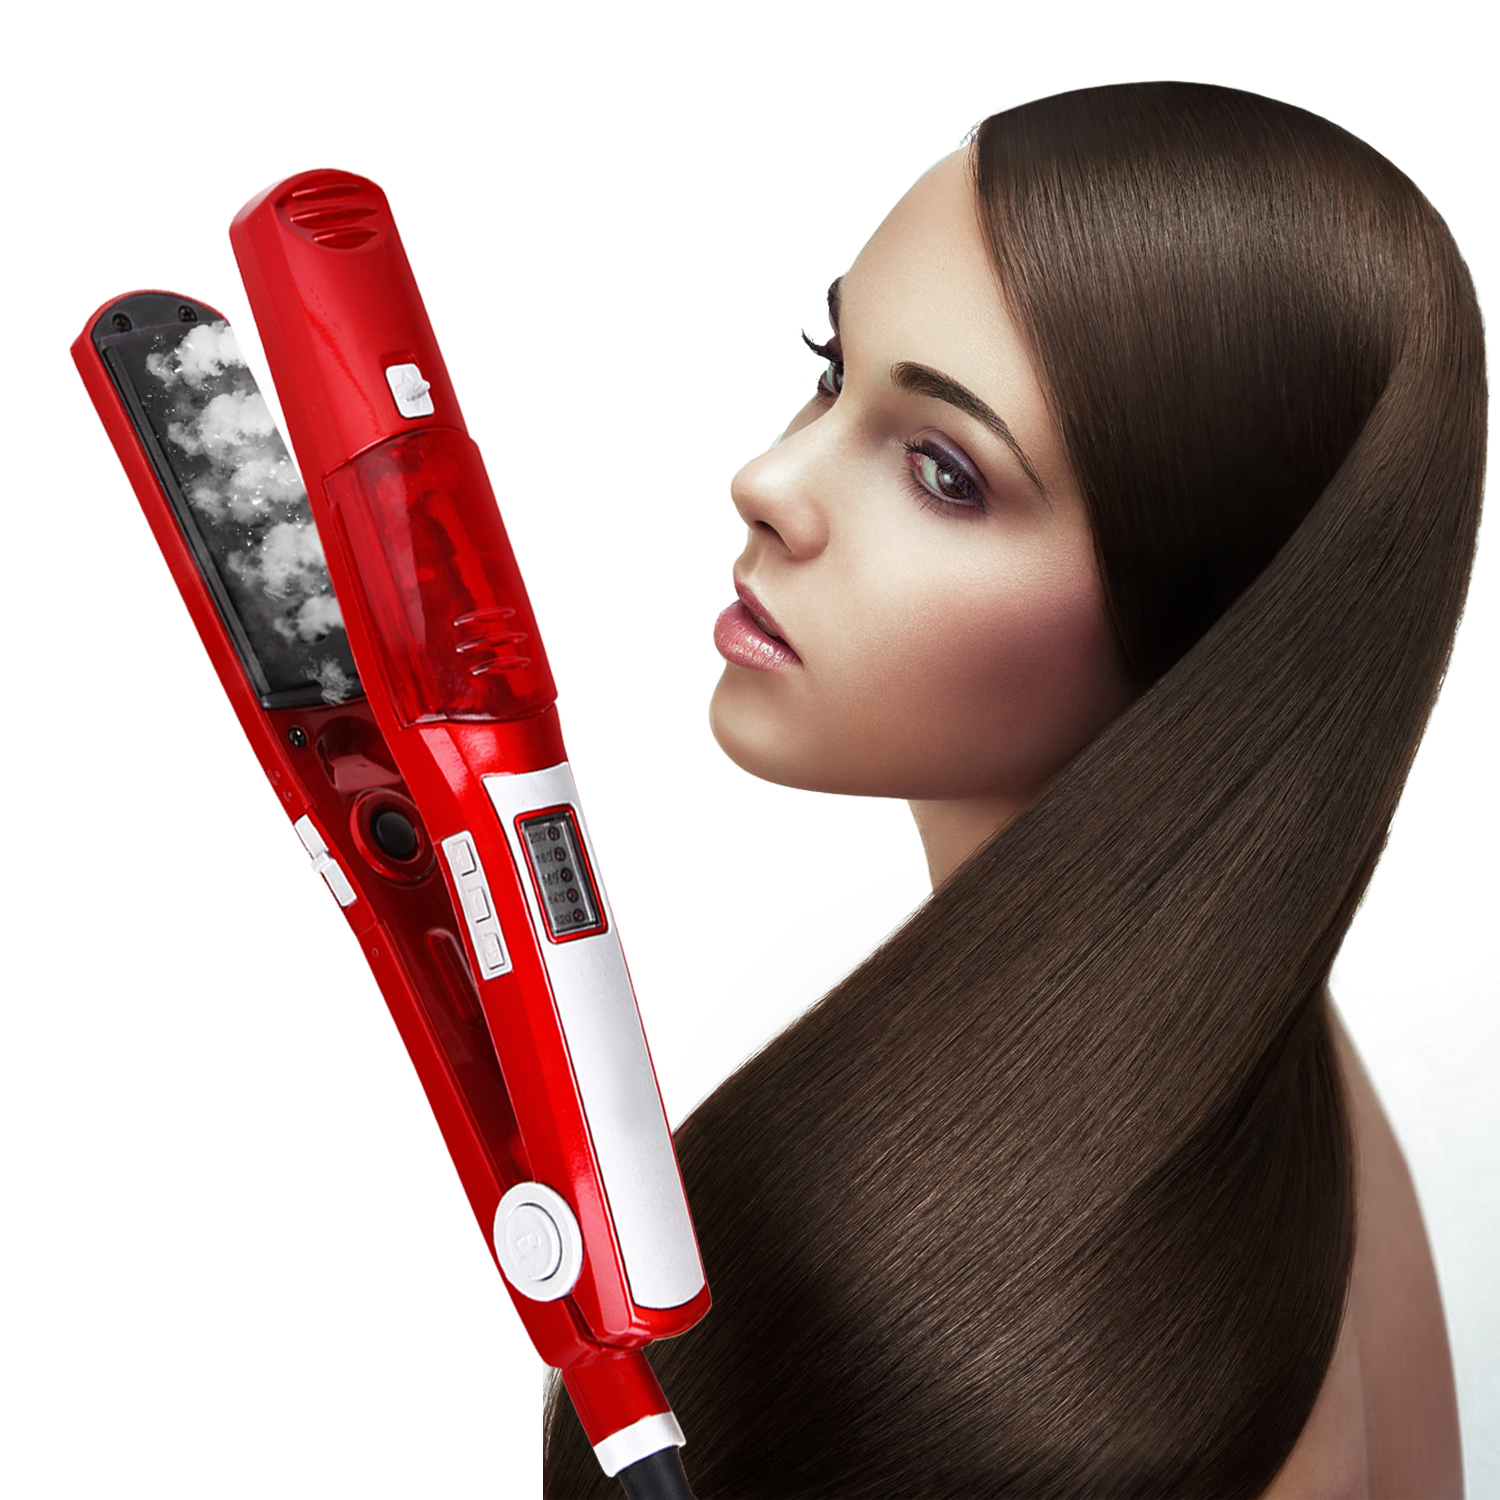 Professional Argan Oil Steam Hair Straightener Flat Iron Injection Painting 450F Straightening Irons Hair Care Styling Tools image